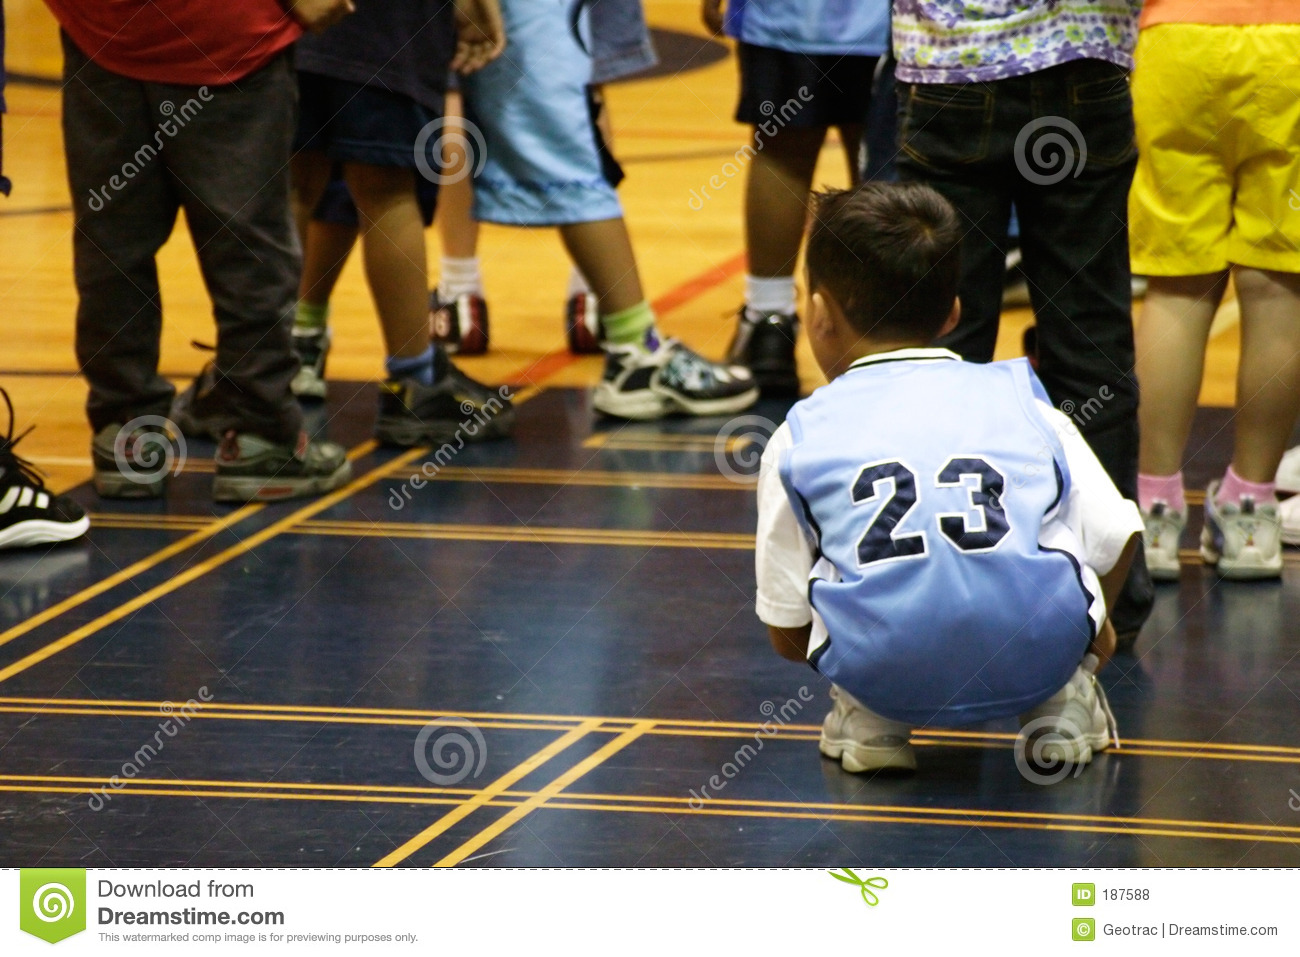 Kids playing in the Gym